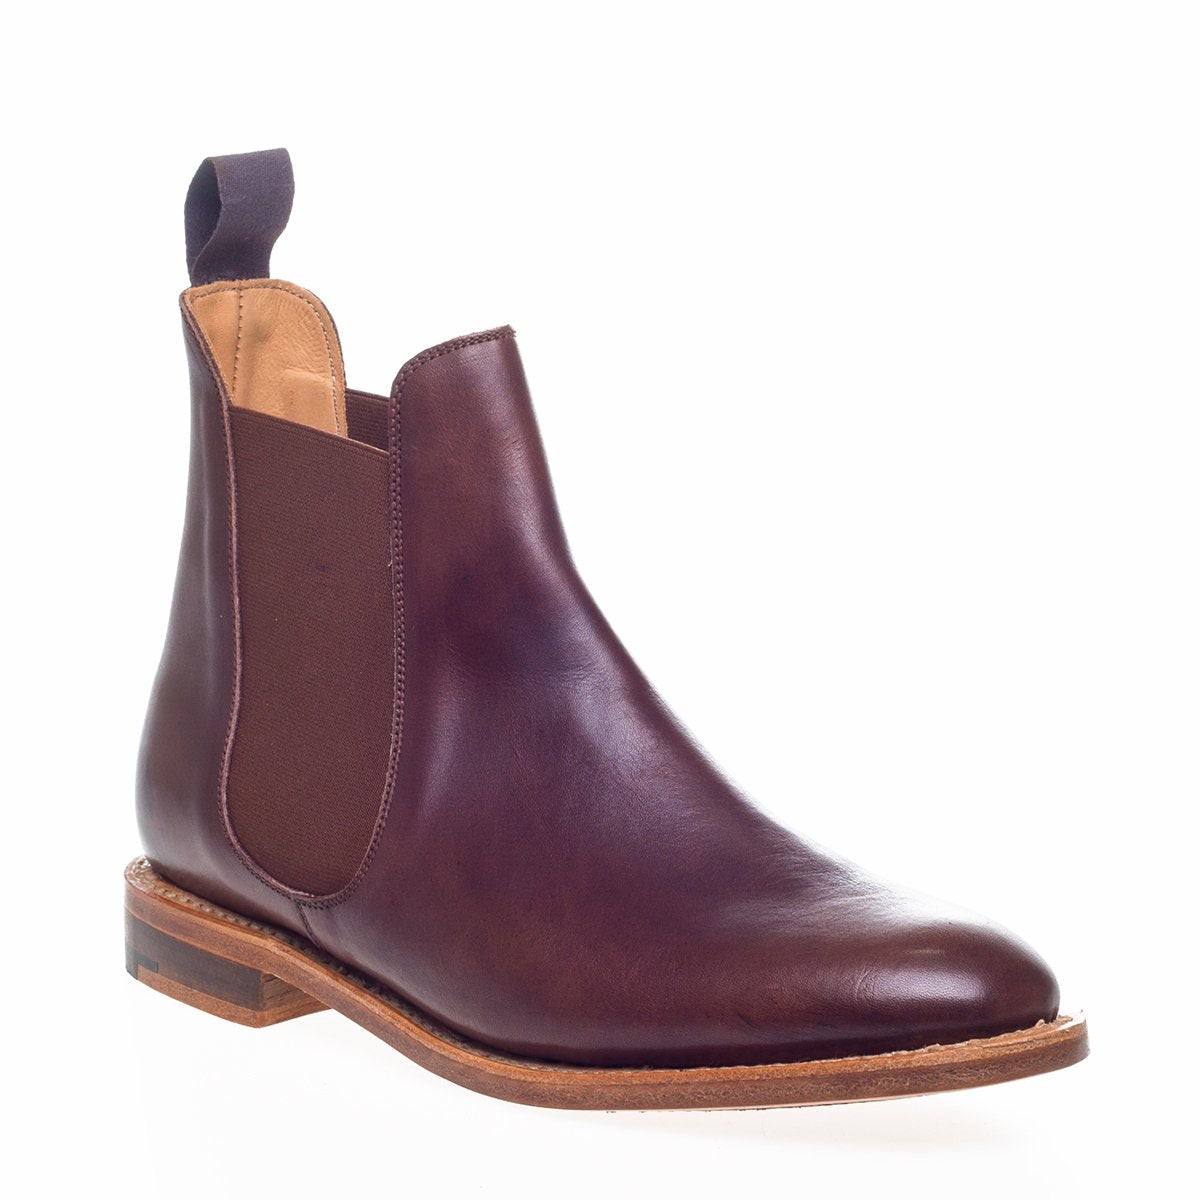 NPS Victoria Chelsea Boot - Walnut Calf